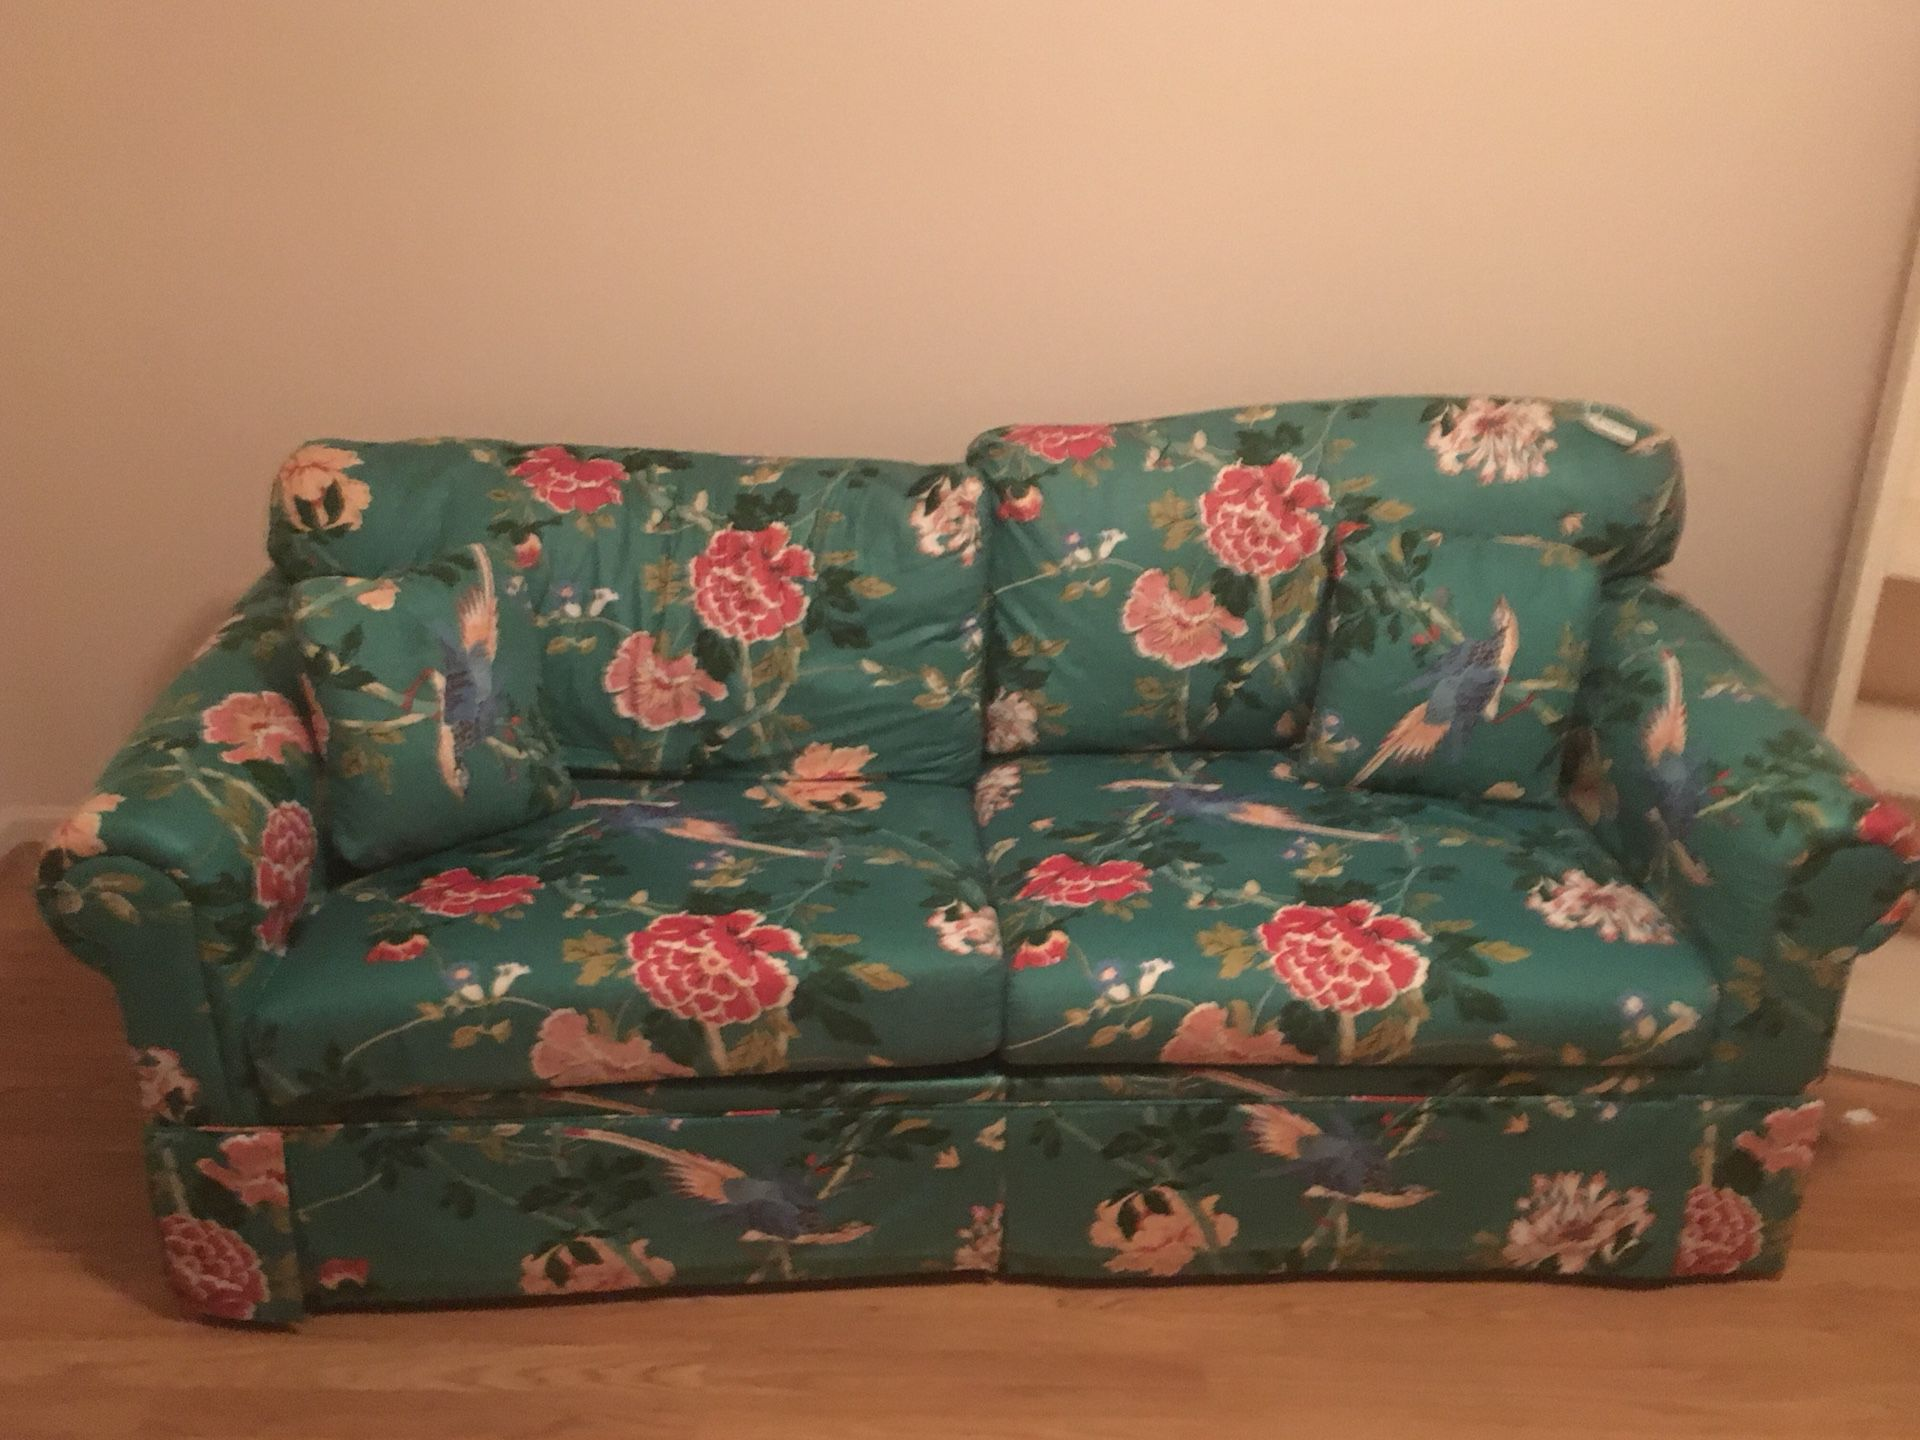 Pull out sofa bed no pets no stains no smells pick up in knightdale oh must have help to load firm price 45